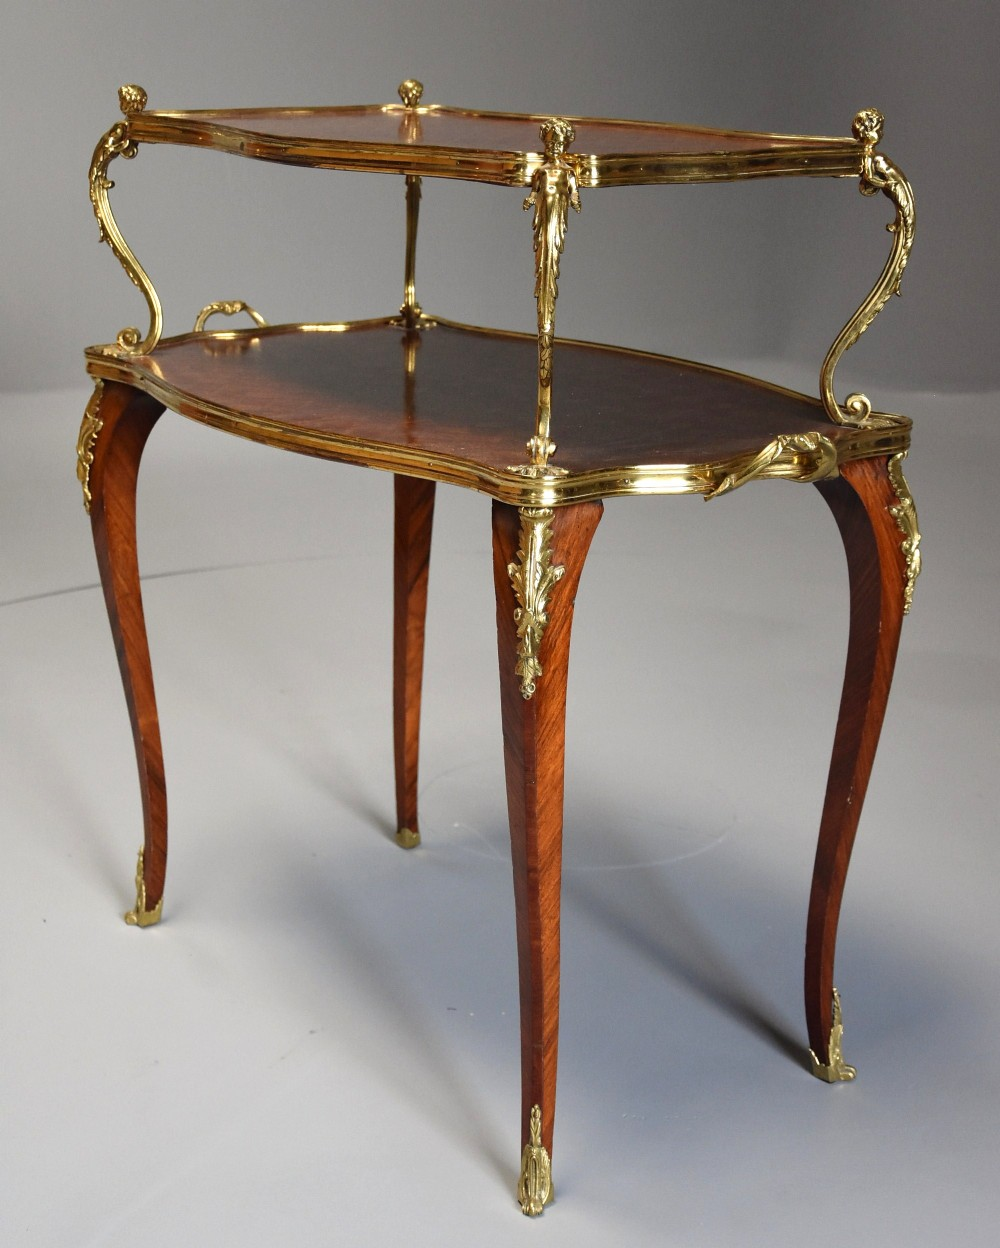 fine quality french 19thc kingwood parquetry two tier serpentine shaped etagere